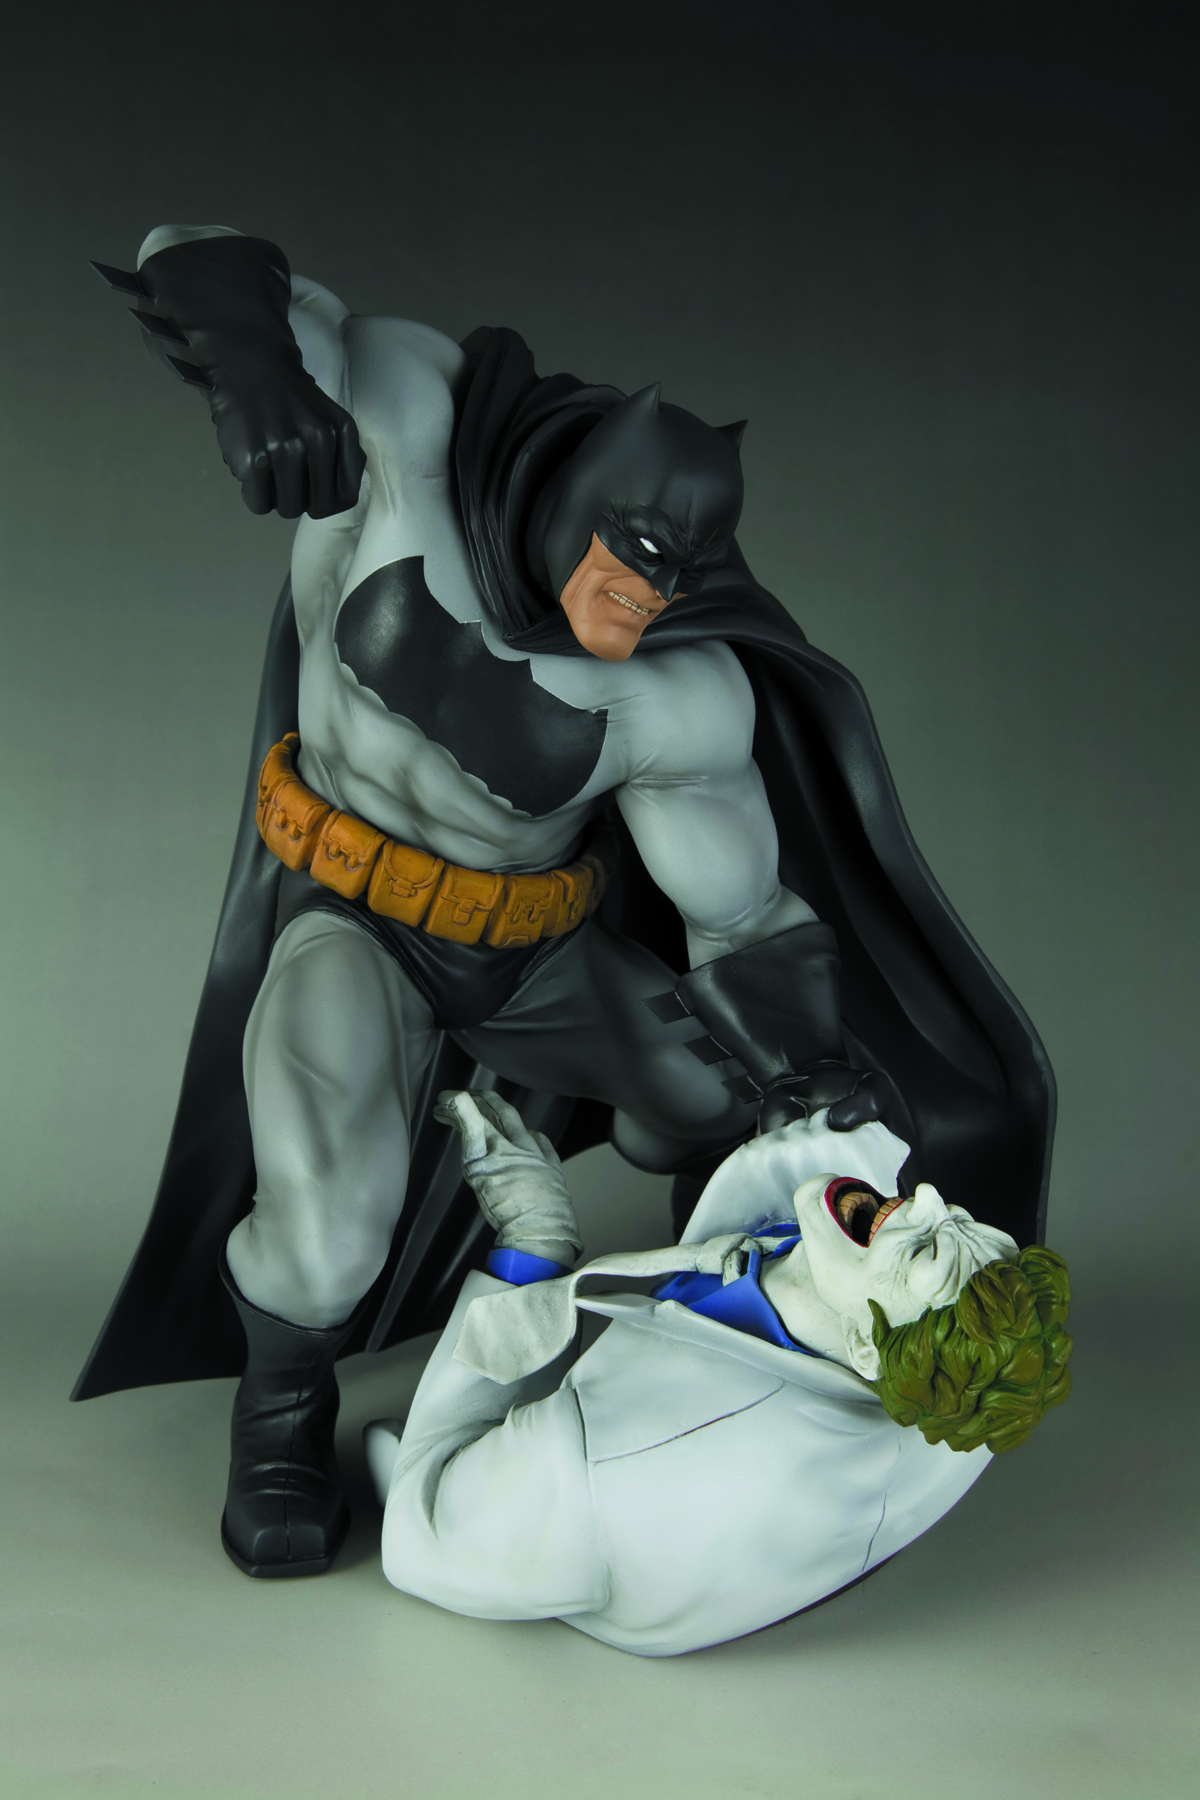 PREVIEWSworld - DARK KNIGHT RETURNS BATMAN VS JOKER ARTFX ...